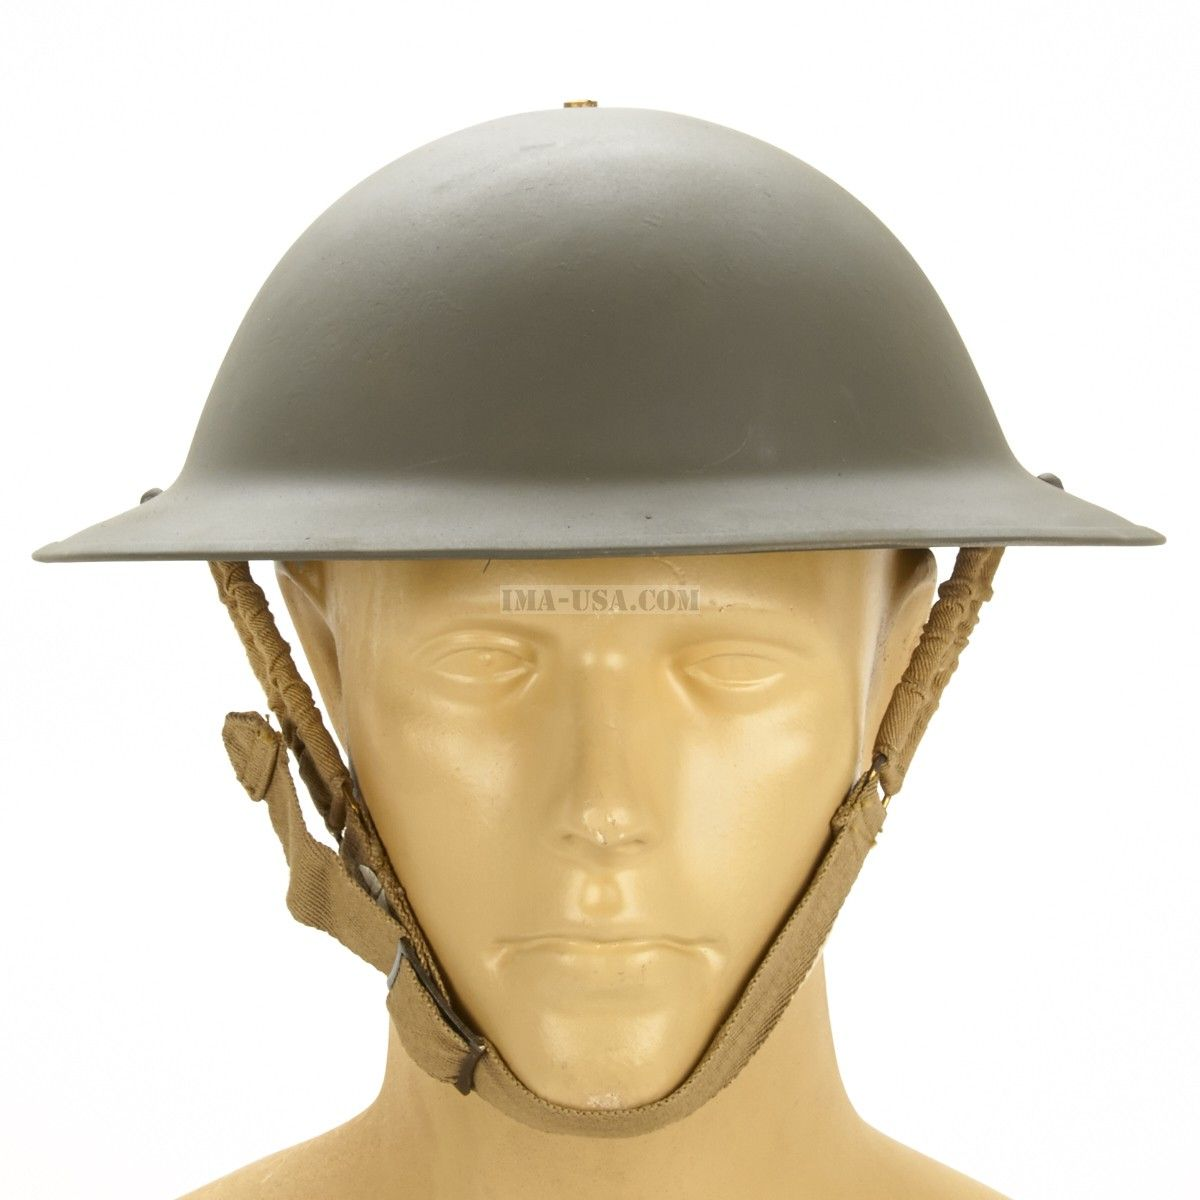 The M1 Helmet of World War Two - the steel pot